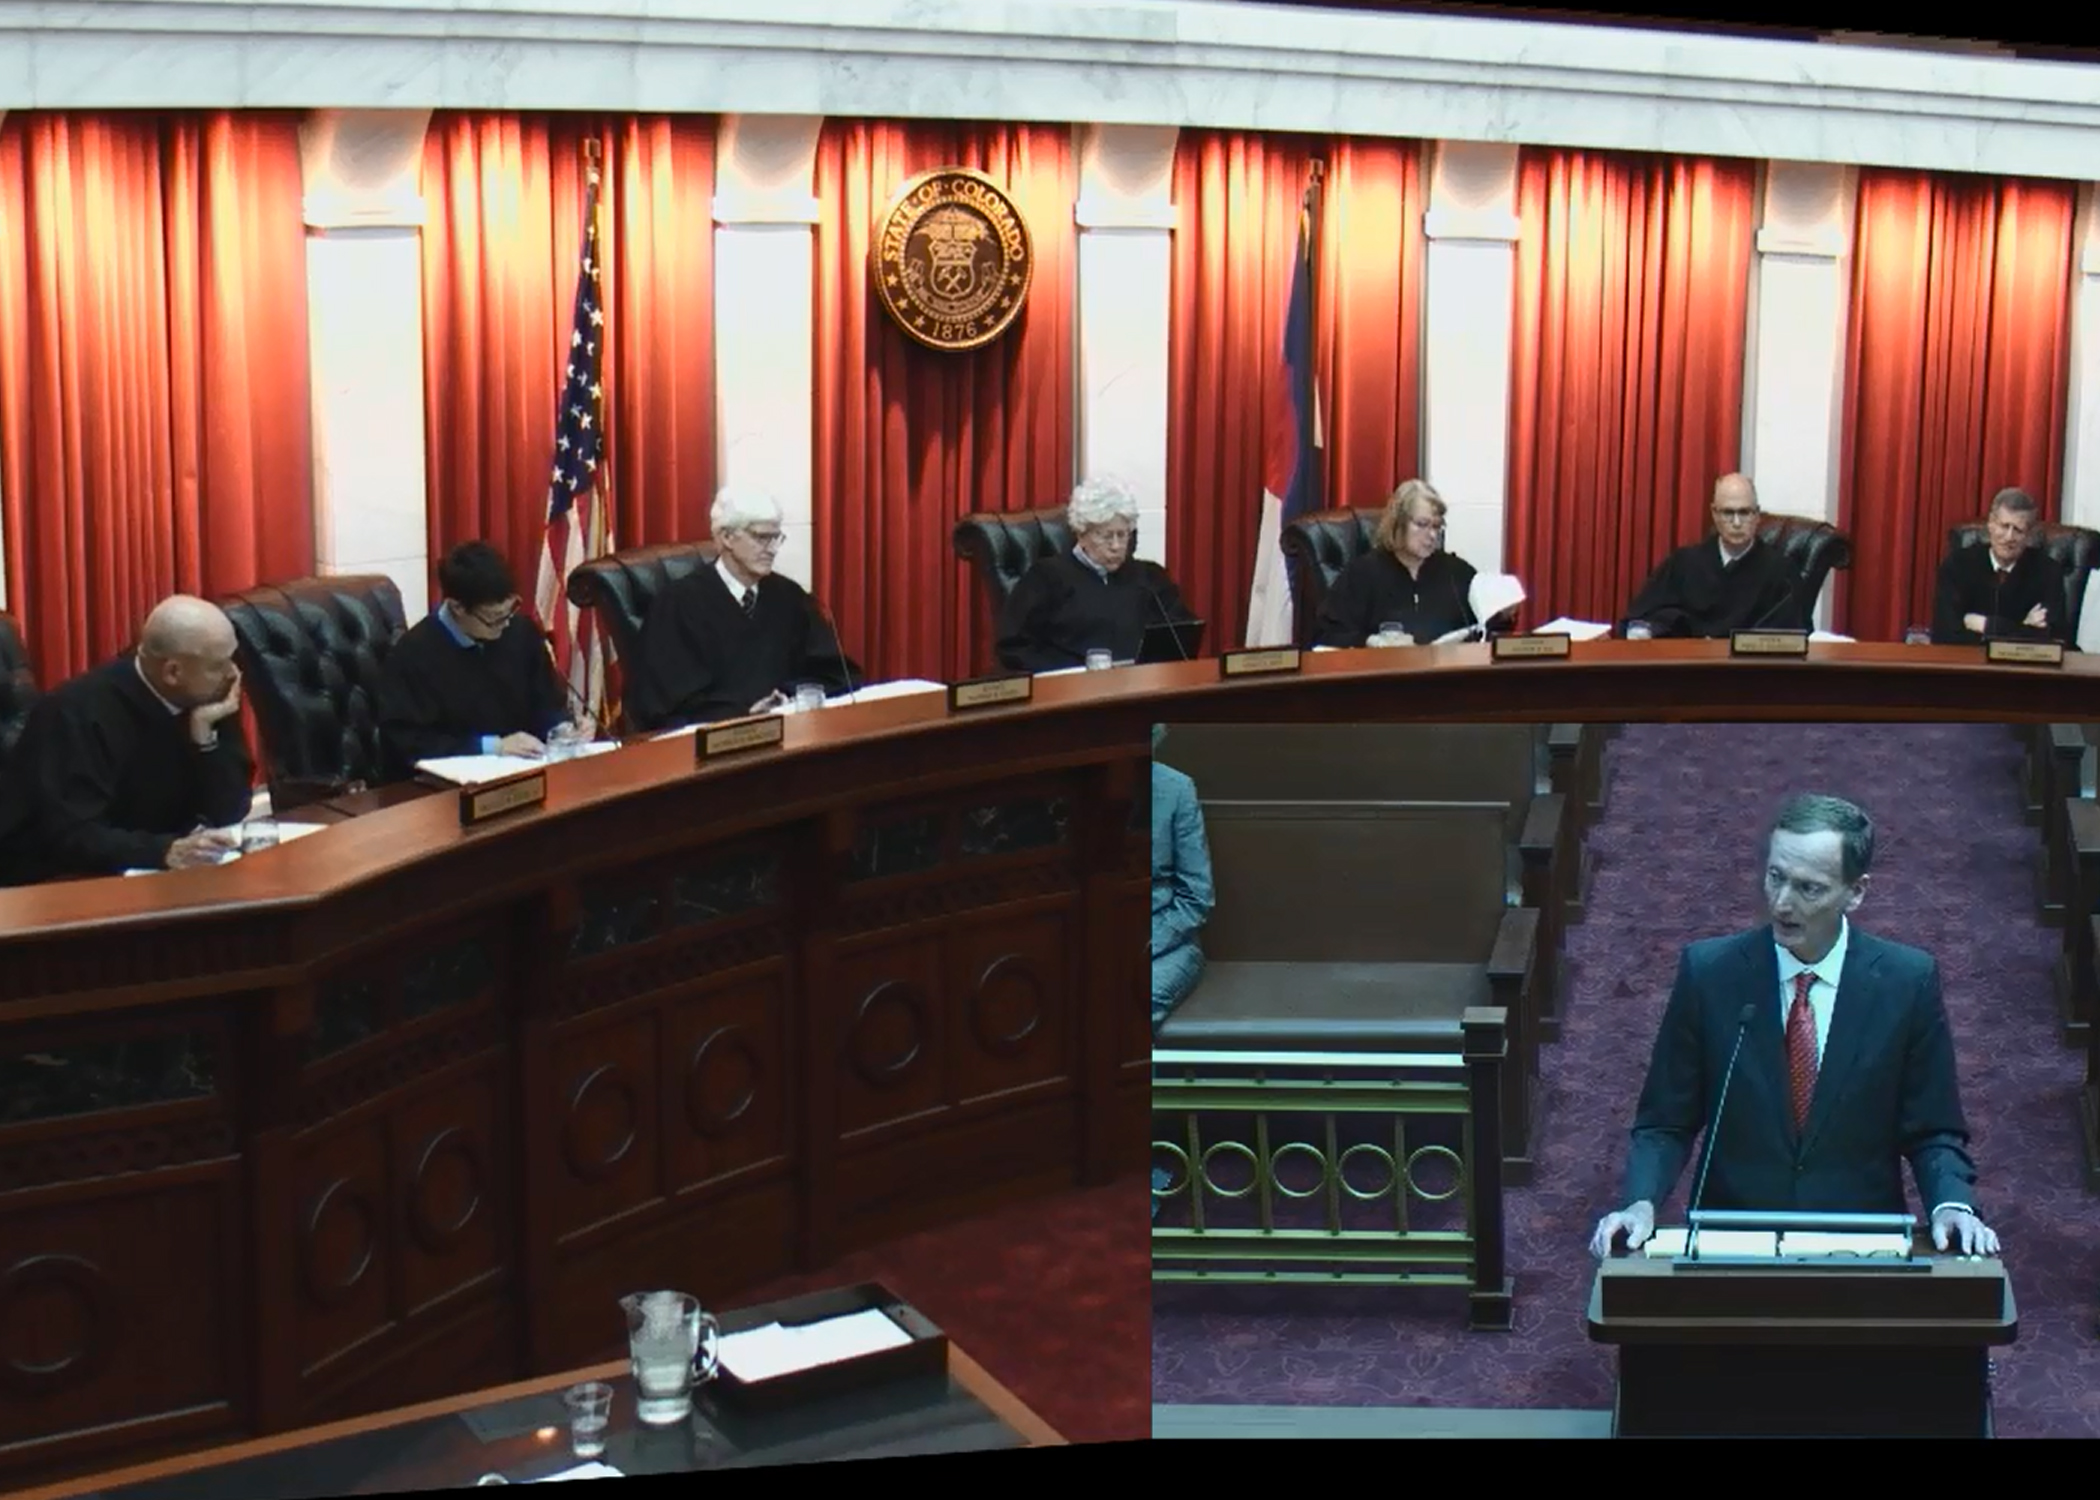 Joseph A Murr presents oral arguments before the panel of judges inside the Colorado Supreme Court C